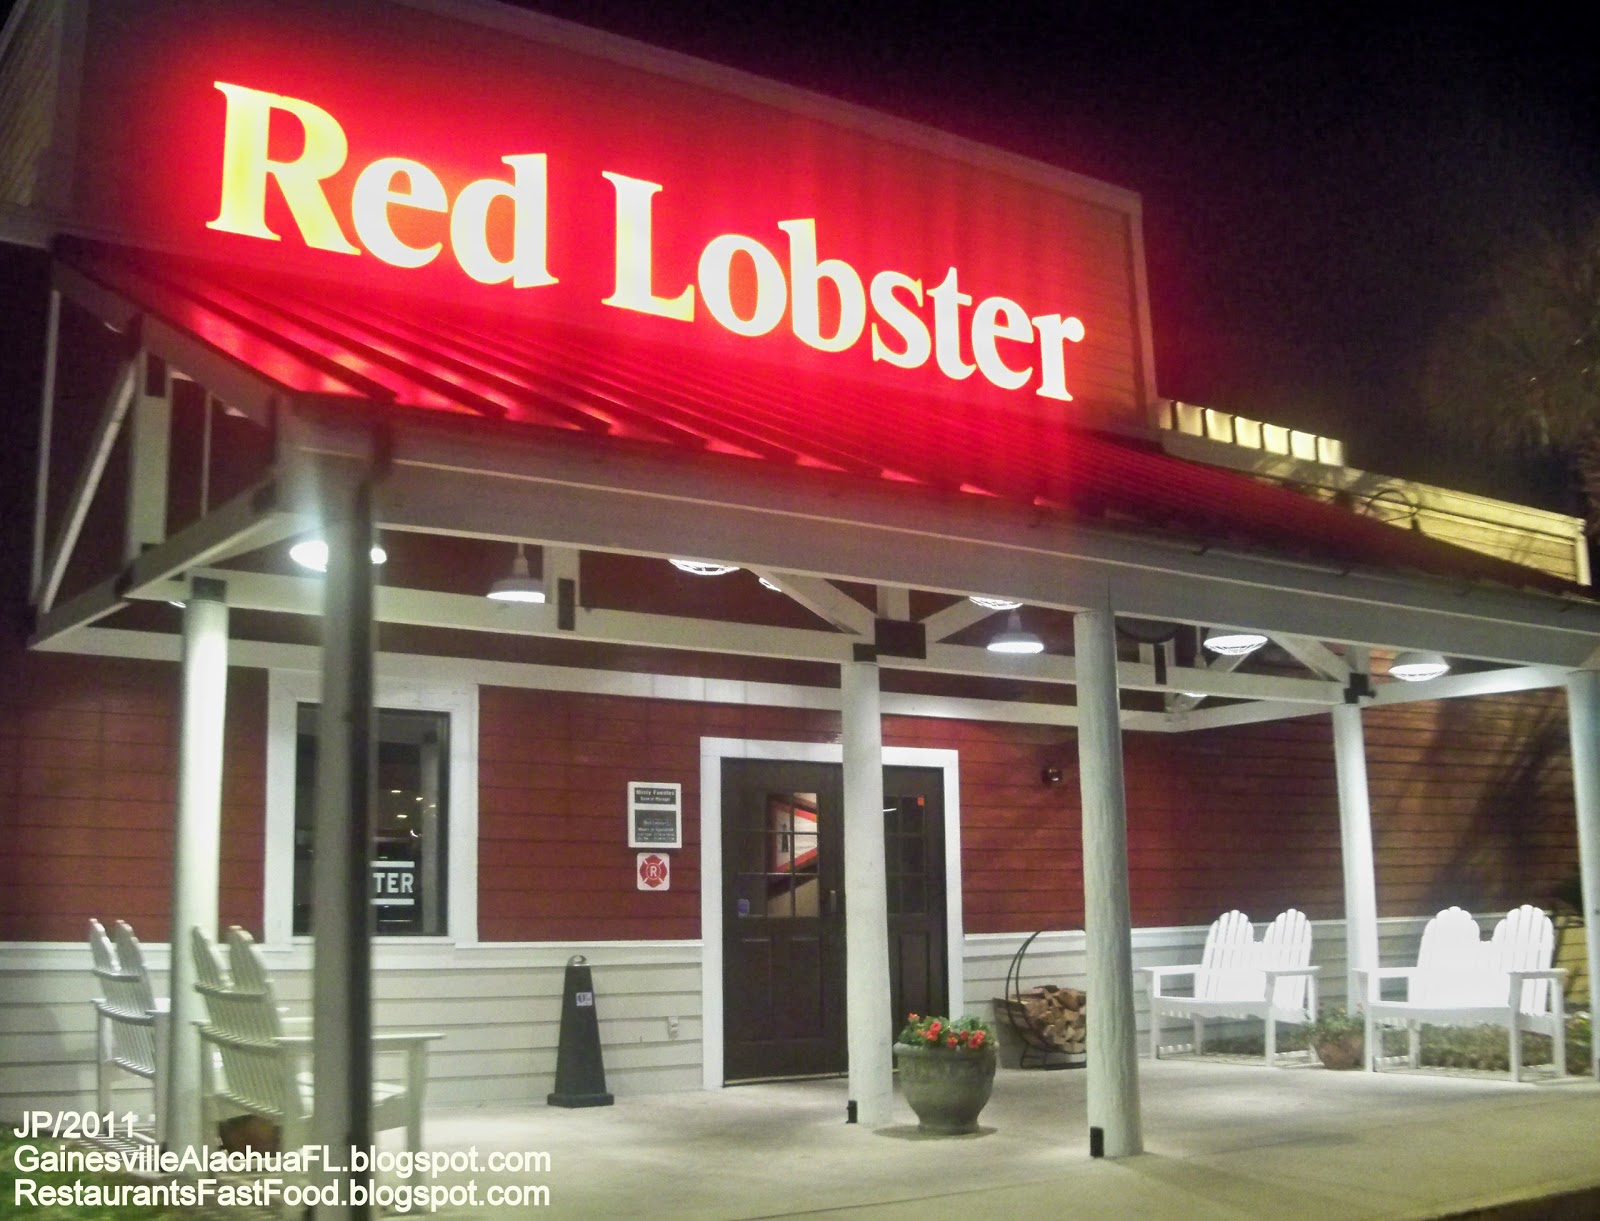 red lobster As sales slump in the restaurant industry, red lobster is bringing back a customer favorite.